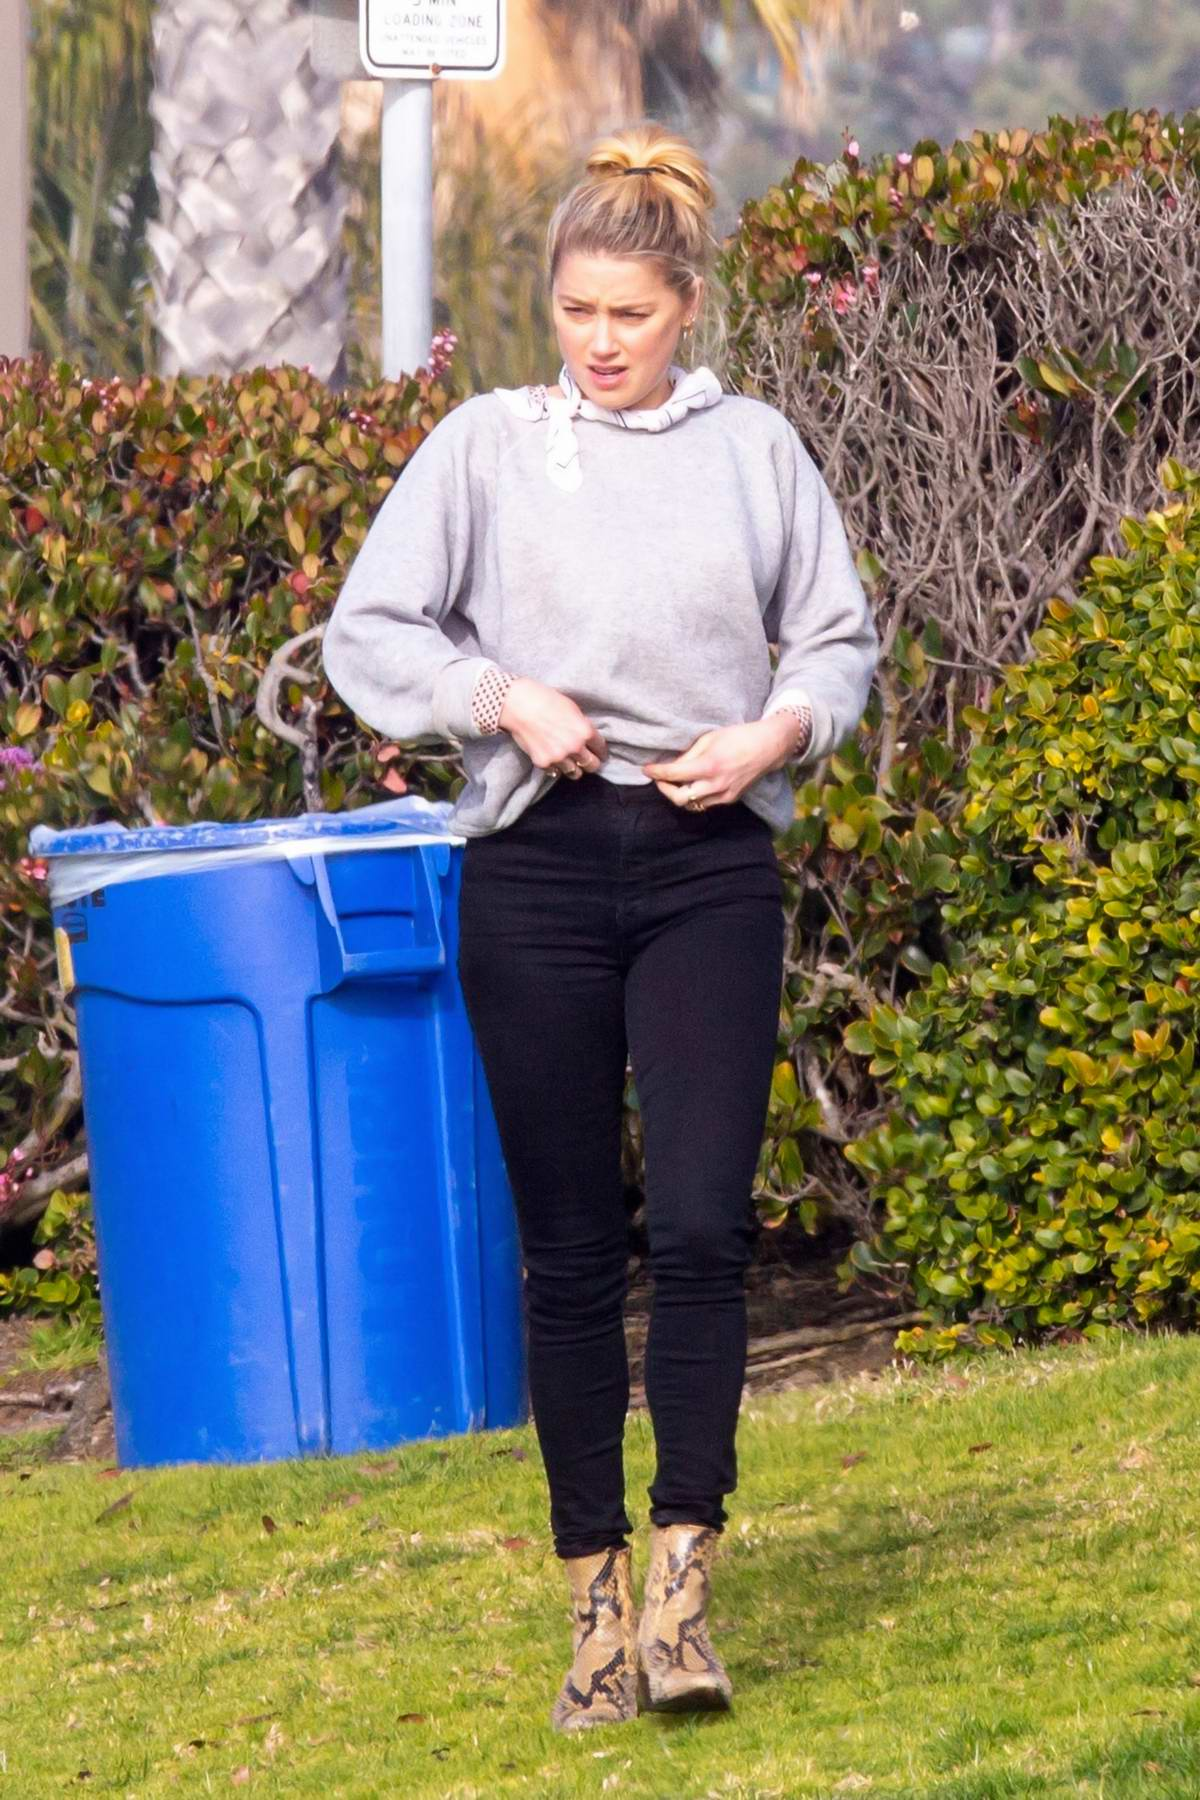 Amber Heard have a picnic with girlfriend Bianca Butti before grabbing coffee and wine in San Diego, California